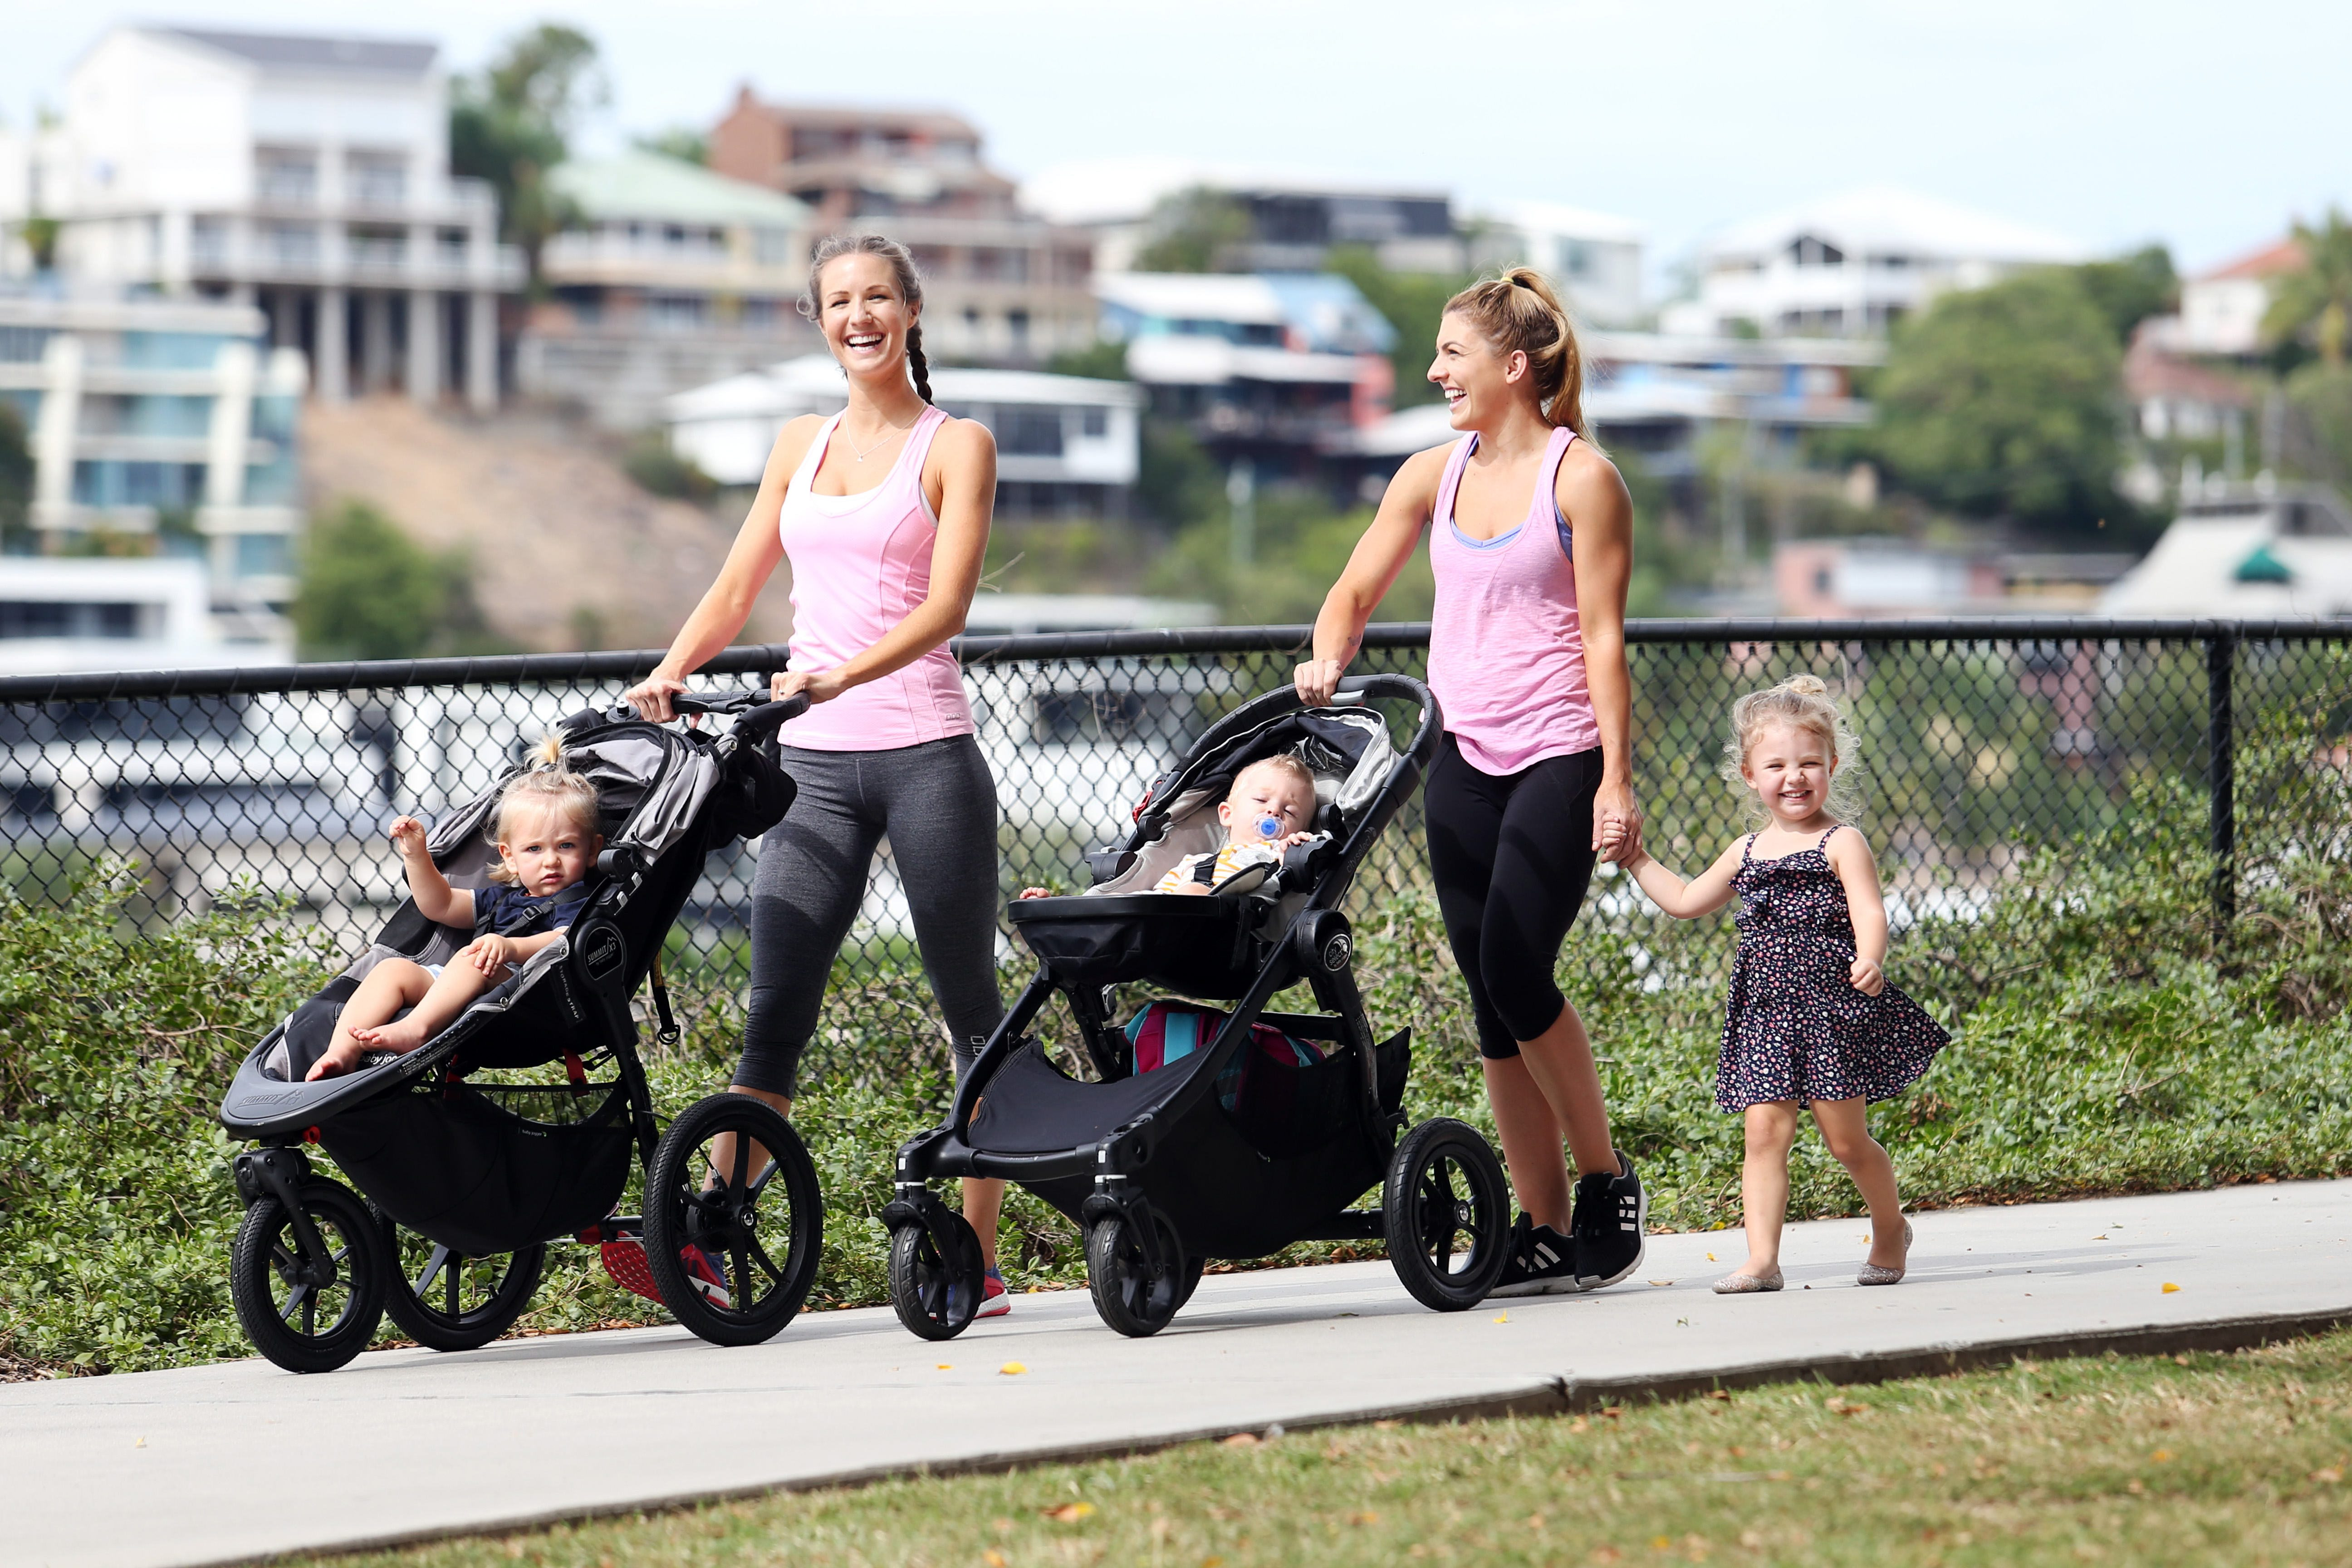 mums-walking-with-kids-in-prams